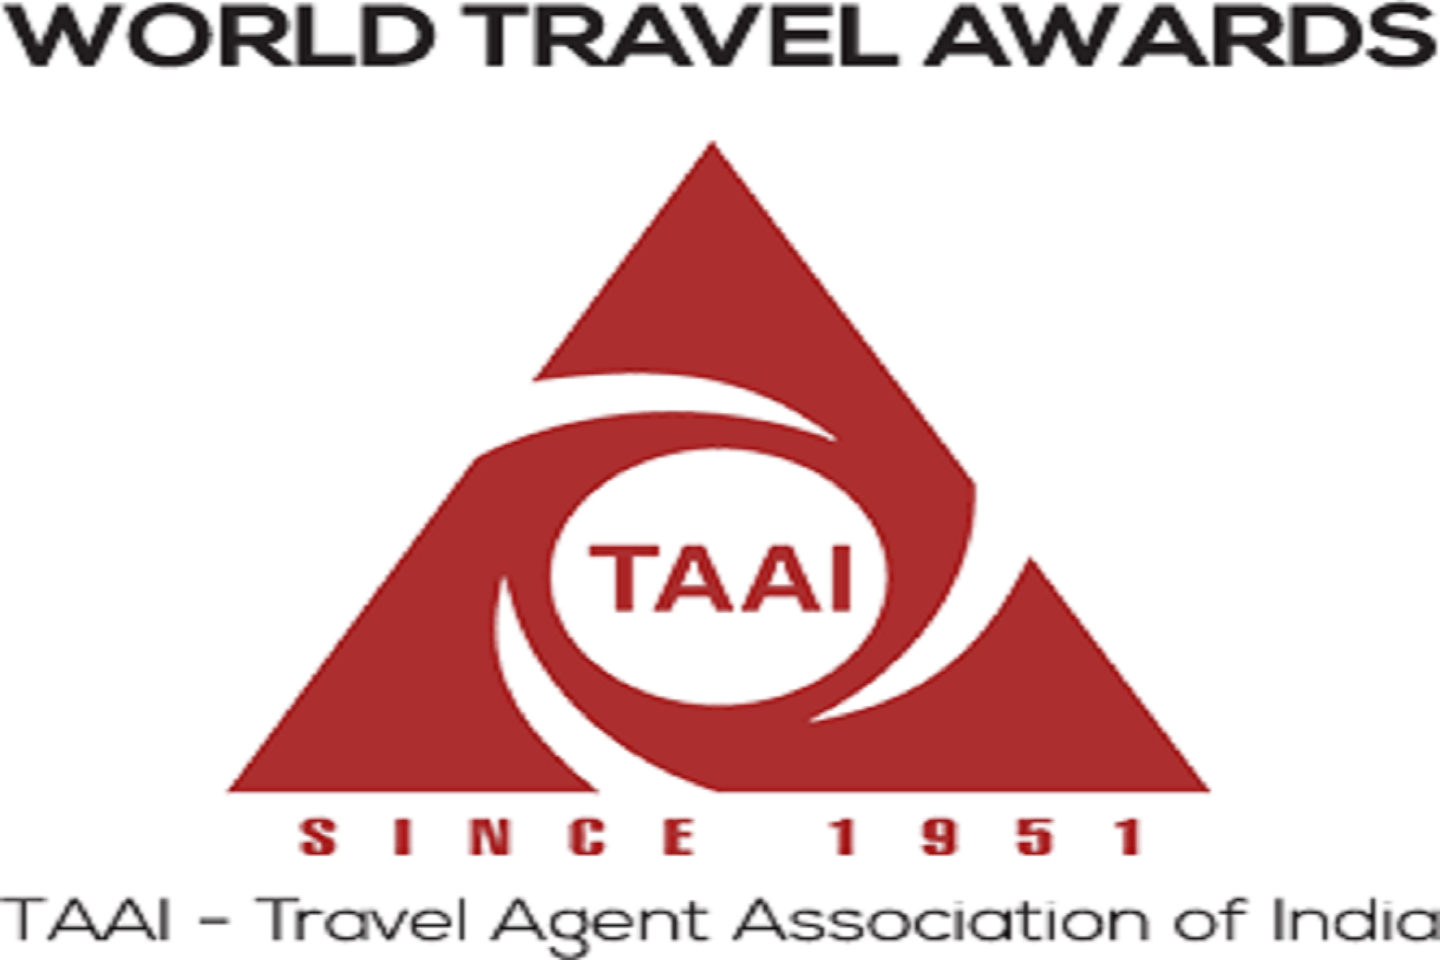 TAAI meets Air India to reward IATA agencies